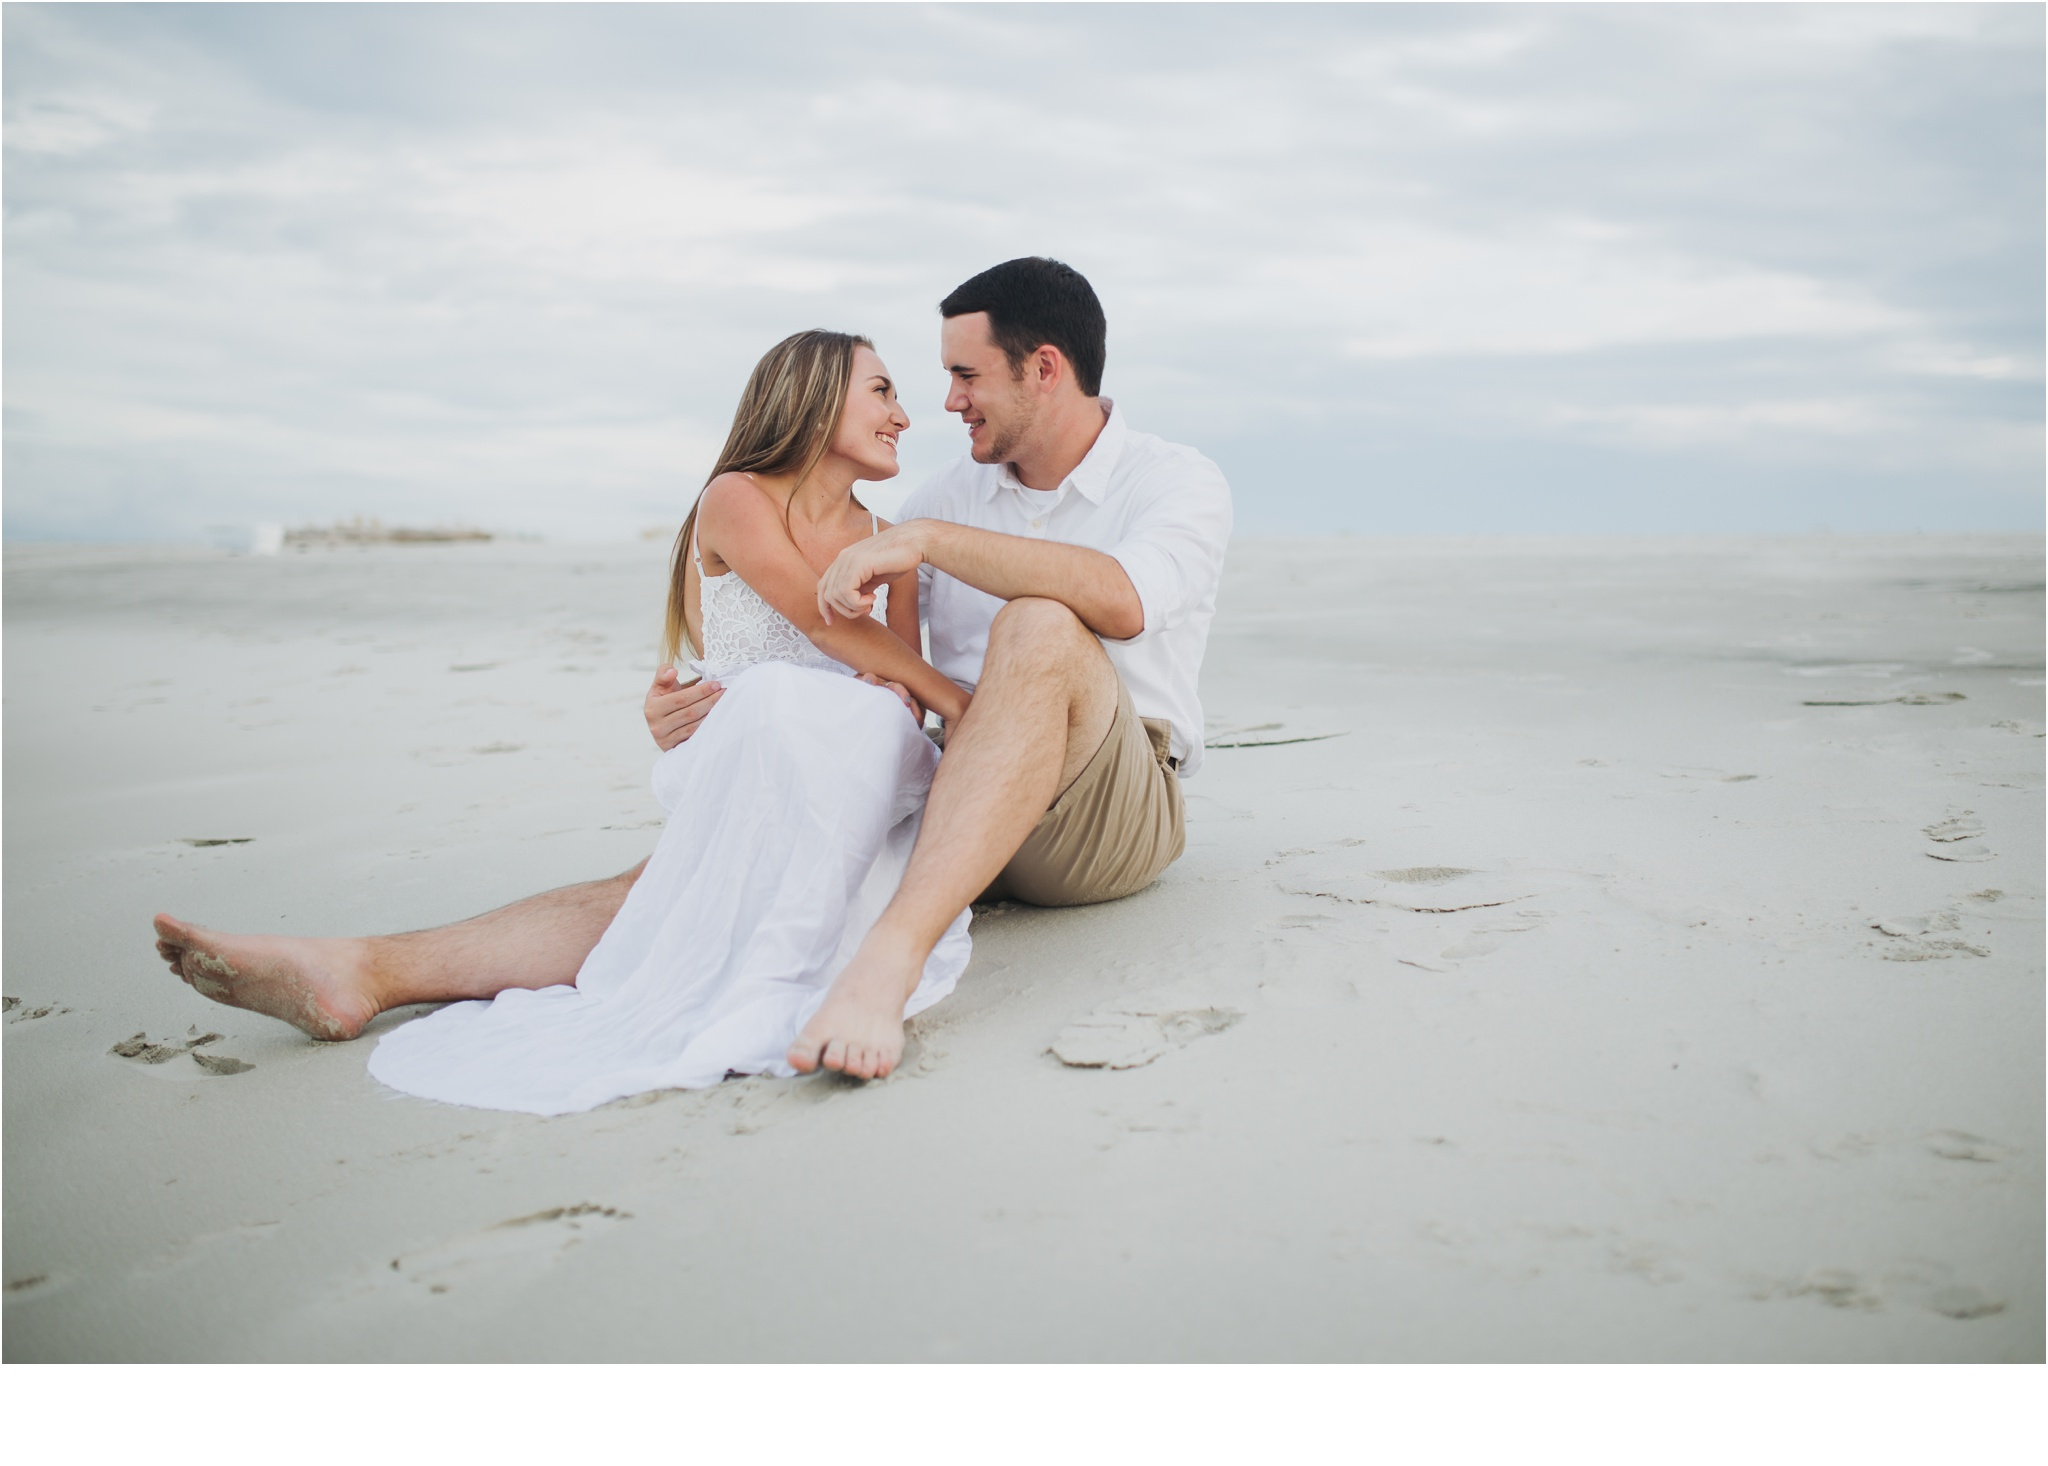 Rainey_Gregg_Photography_St._Simons_Island_Georgia_California_Wedding_Portrait_Photography_1454.jpg